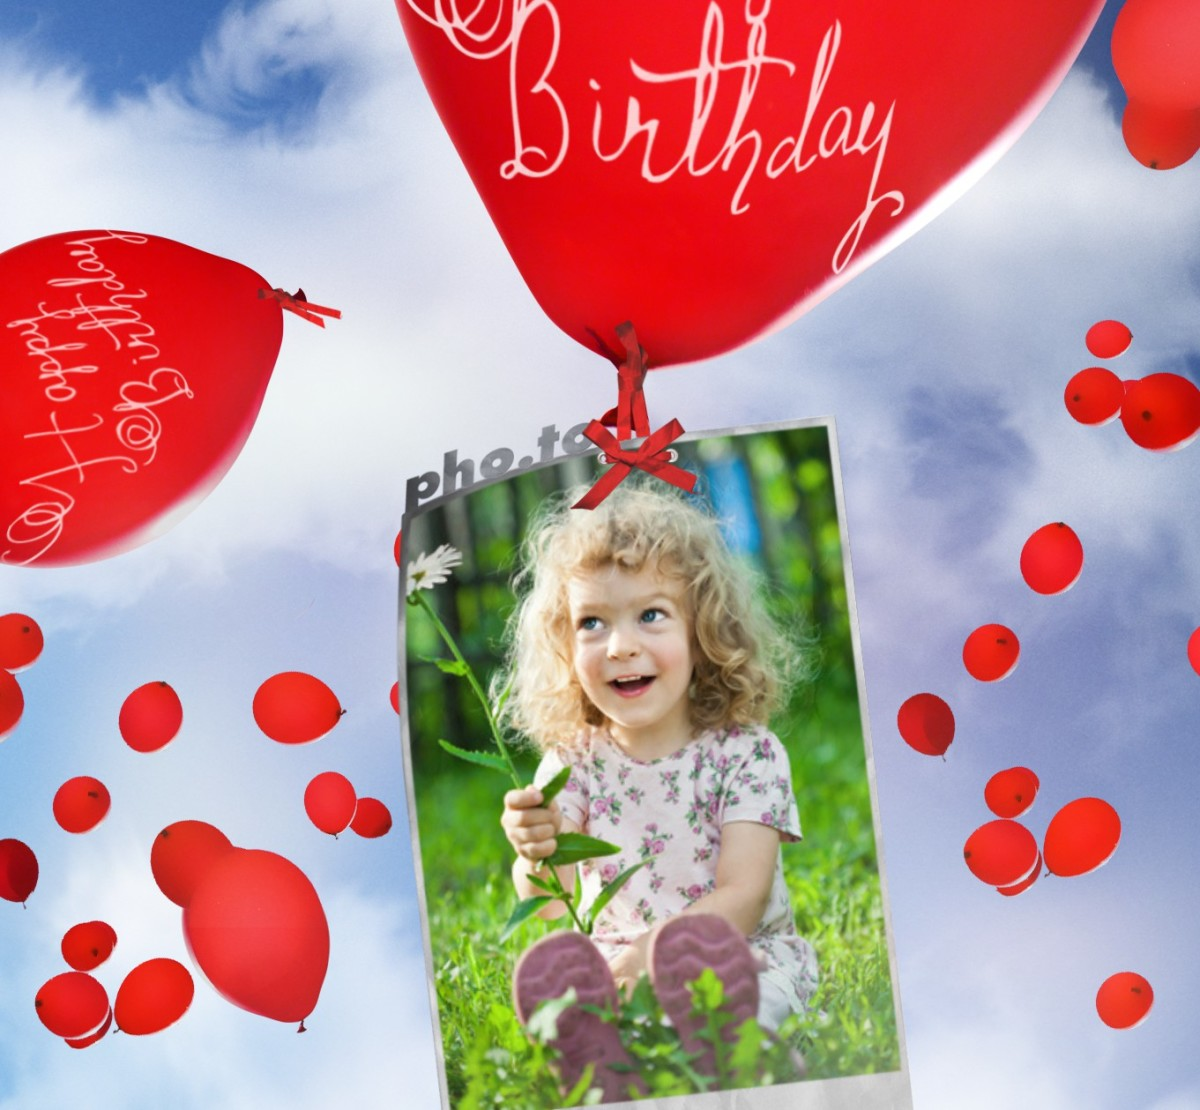 Online birthday card as a way to send long-distance birthday greetings.